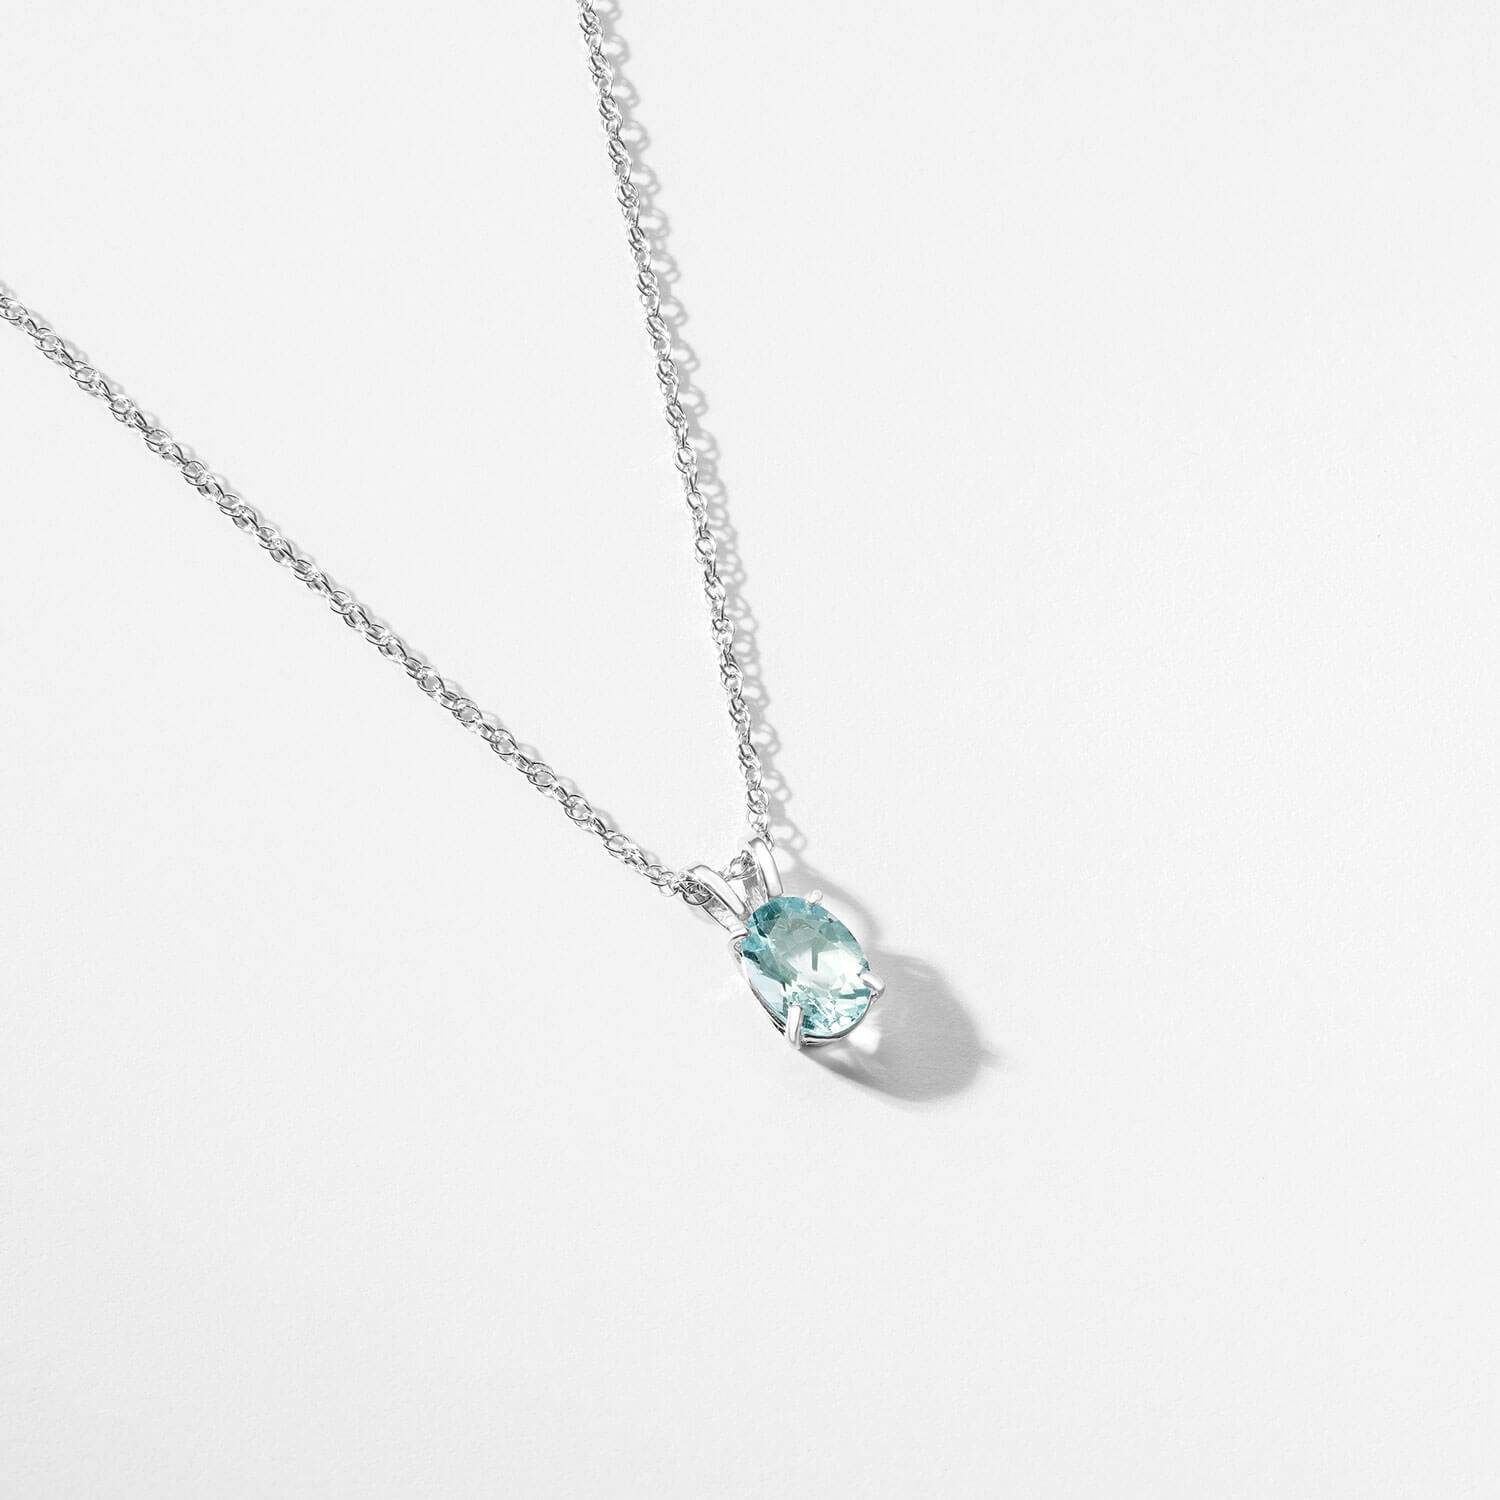 Aquamarine Oval Pendant Necklace 0.75 ct in 9ct White Gold